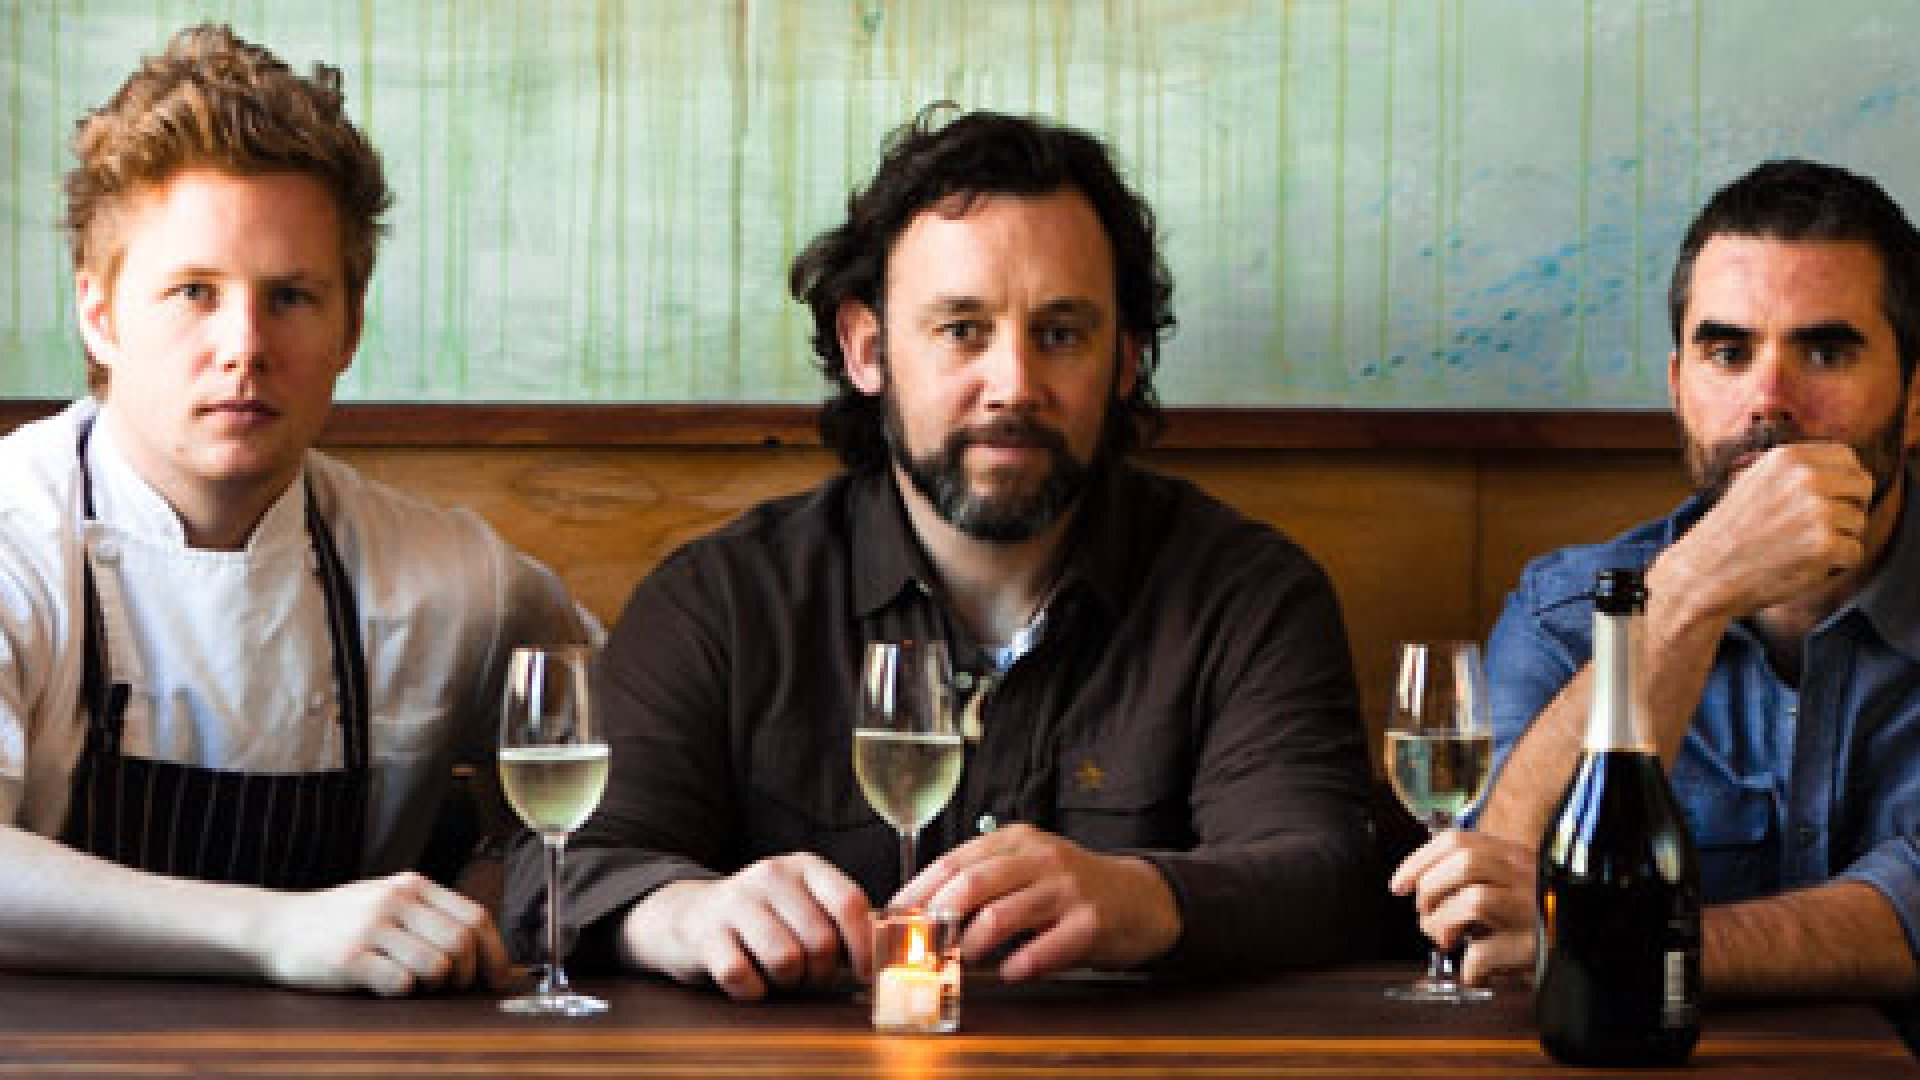 Founders Thomas McNaughton, David White, and David Steele (from left) started restaurant flour + water in May 2009.